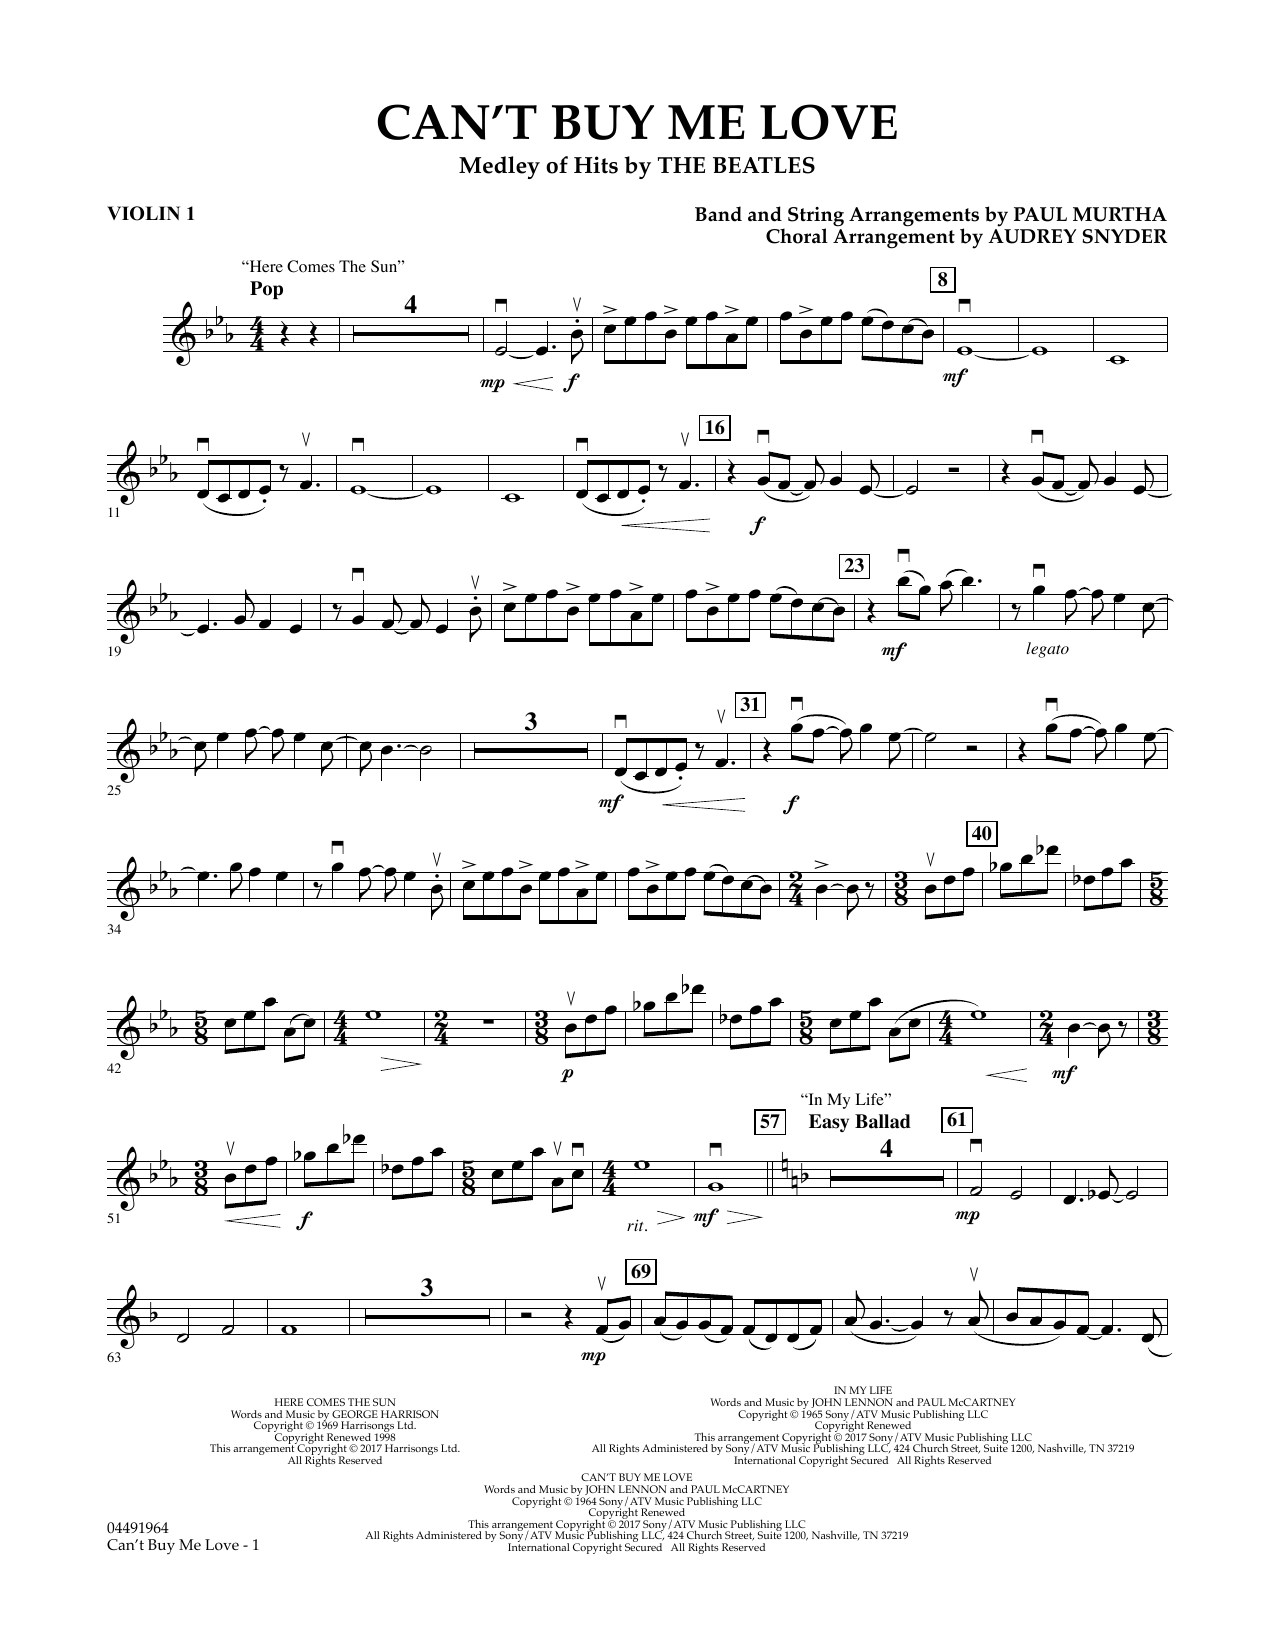 Can't Buy Me Love - Violin 1 Sheet Music